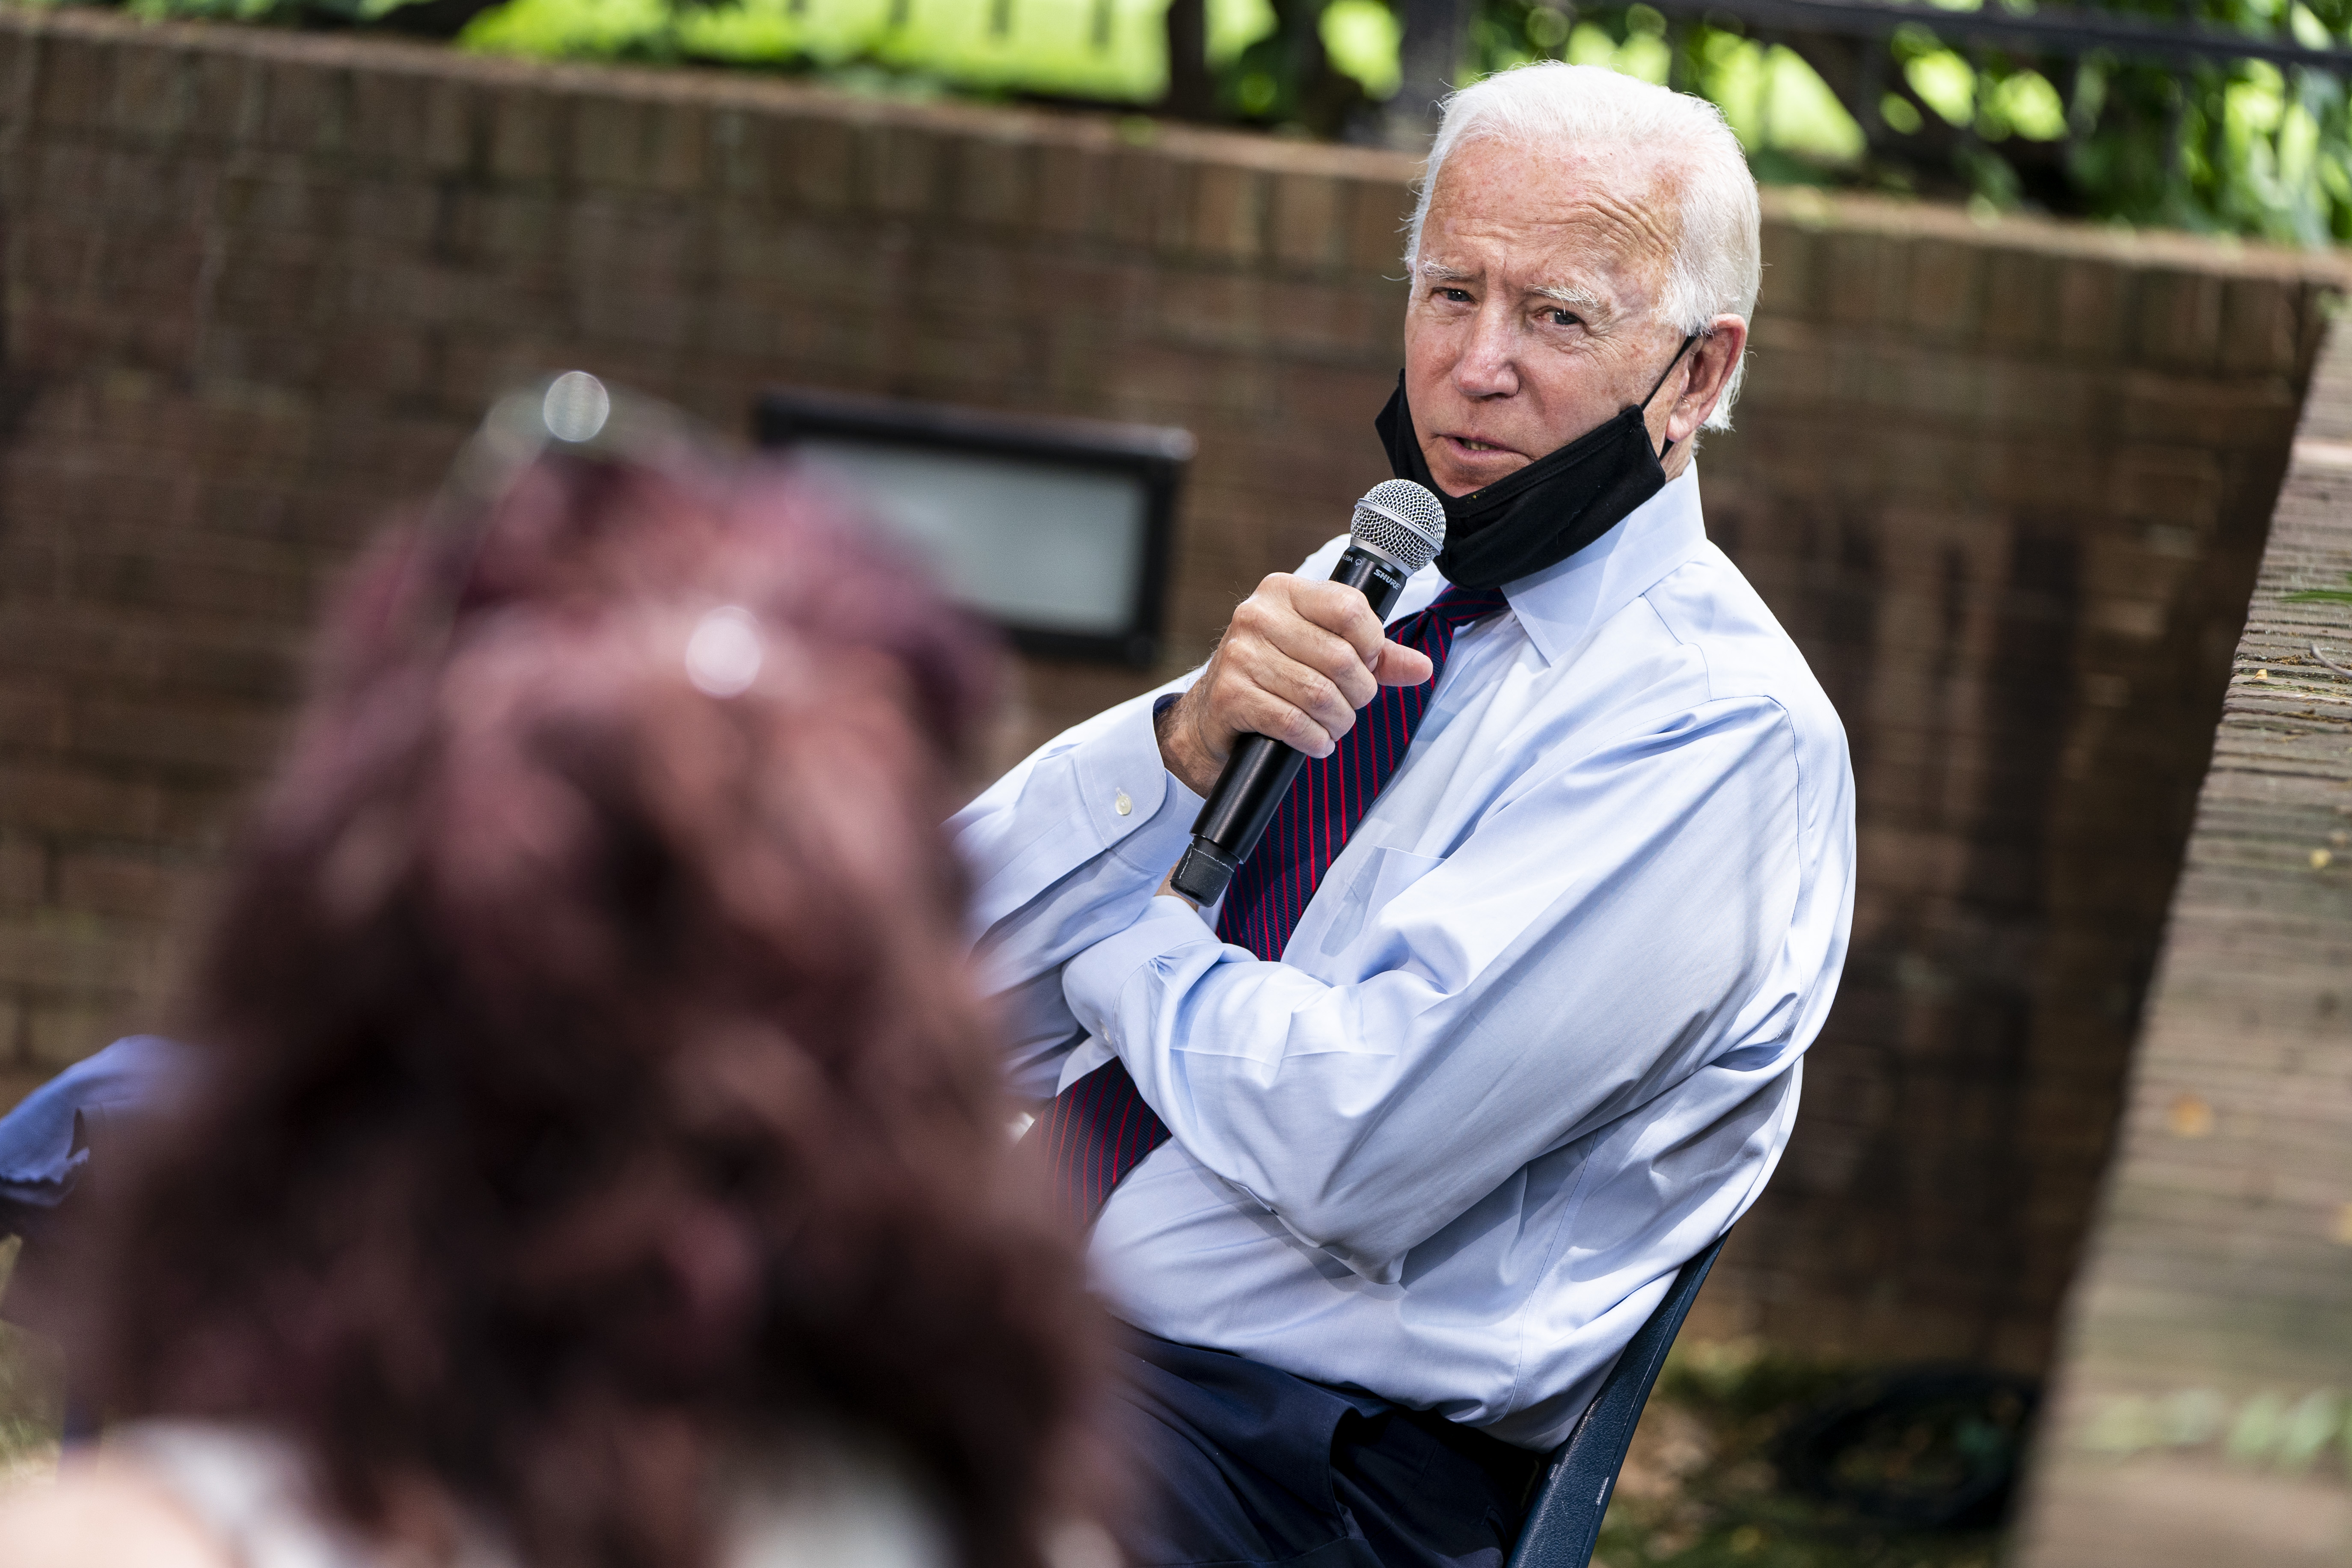 LANCASTER, PA - JUNE 25: Democratic presidential candidate former Vice President Joe Biden speaks to families who have benefited from the Affordable Care Act during an event at the Lancaster Recreation Center on June 25, 2020 in Lancaster, Pennsylvania. Biden met with families who have benefited from the Affordable Care Act and made remarks on his plan for affordable health care. (Photo by Joshua Roberts/Getty Images)